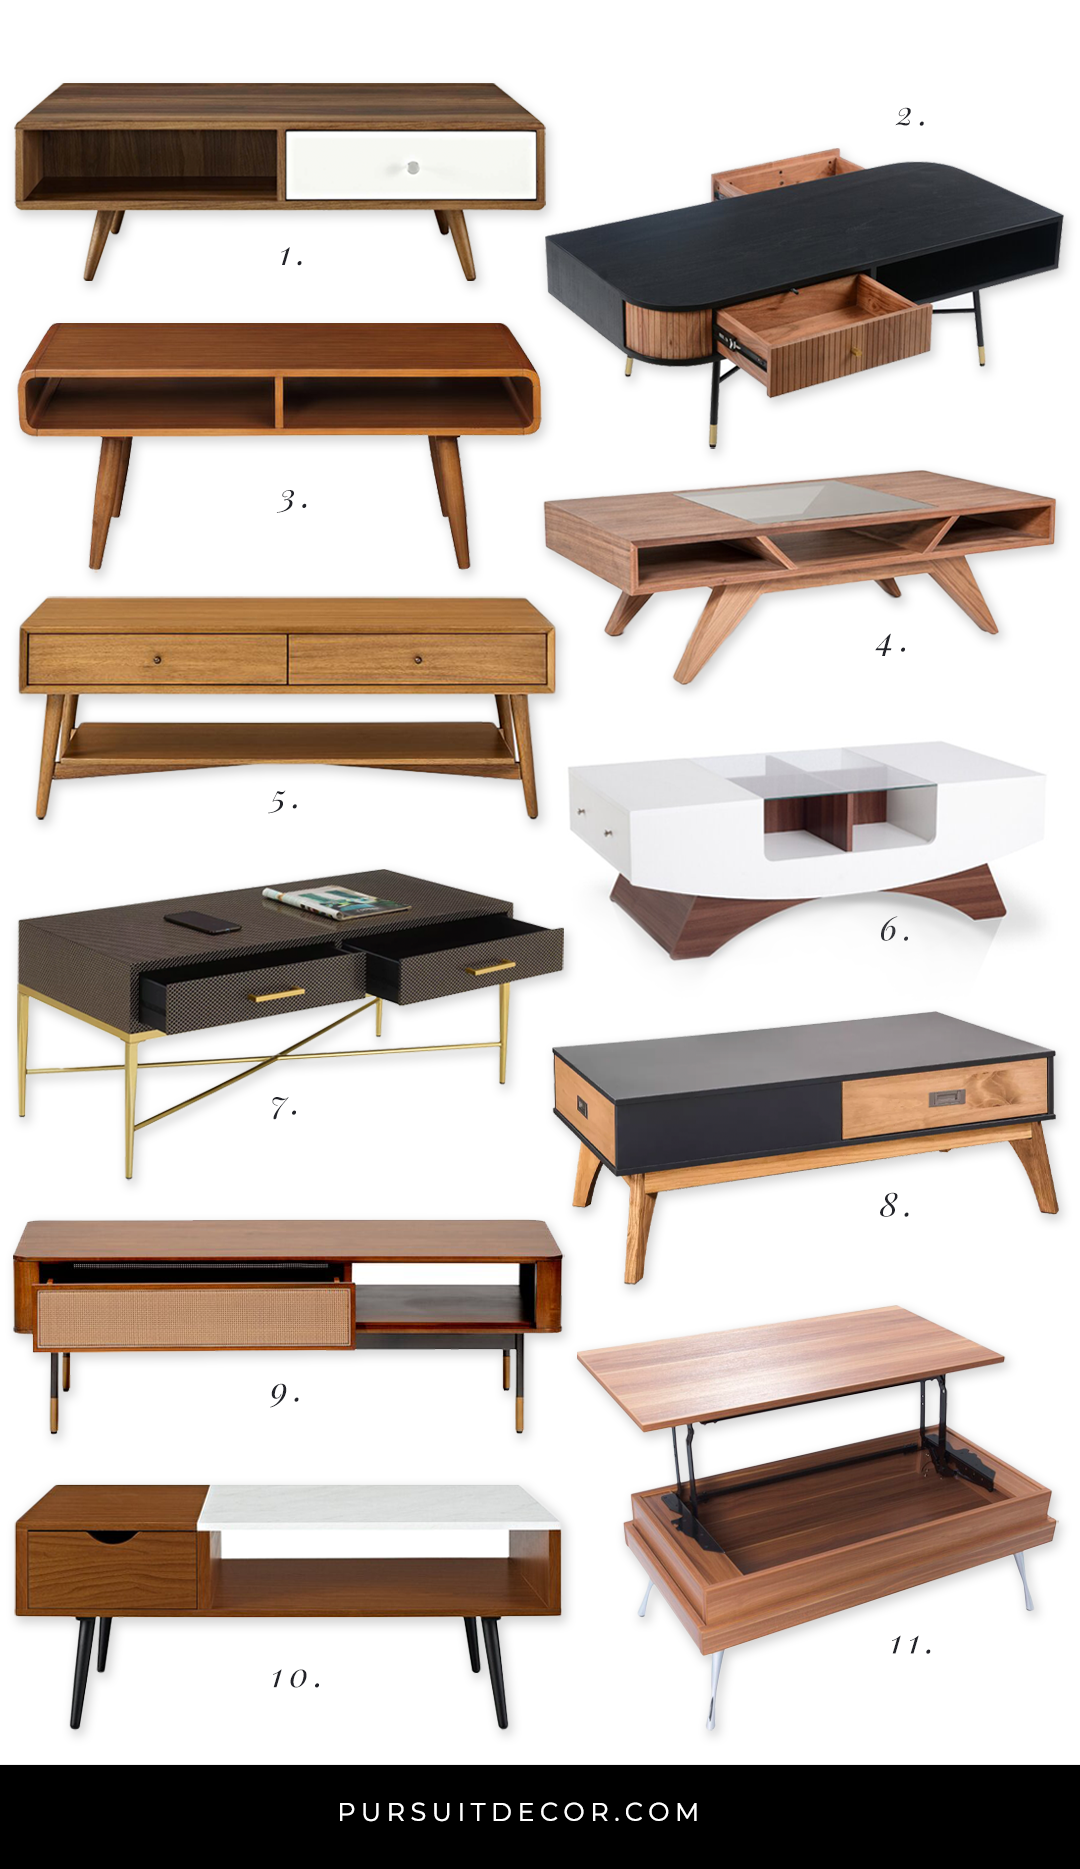 10+ Stylish Mid-Century Modern Coffee Tables with Storage - Pursuit Decor. Mid-Century Coffee Table with drawers, MCM Style, Mid-Century Modern living room furniture. #MCMdecor